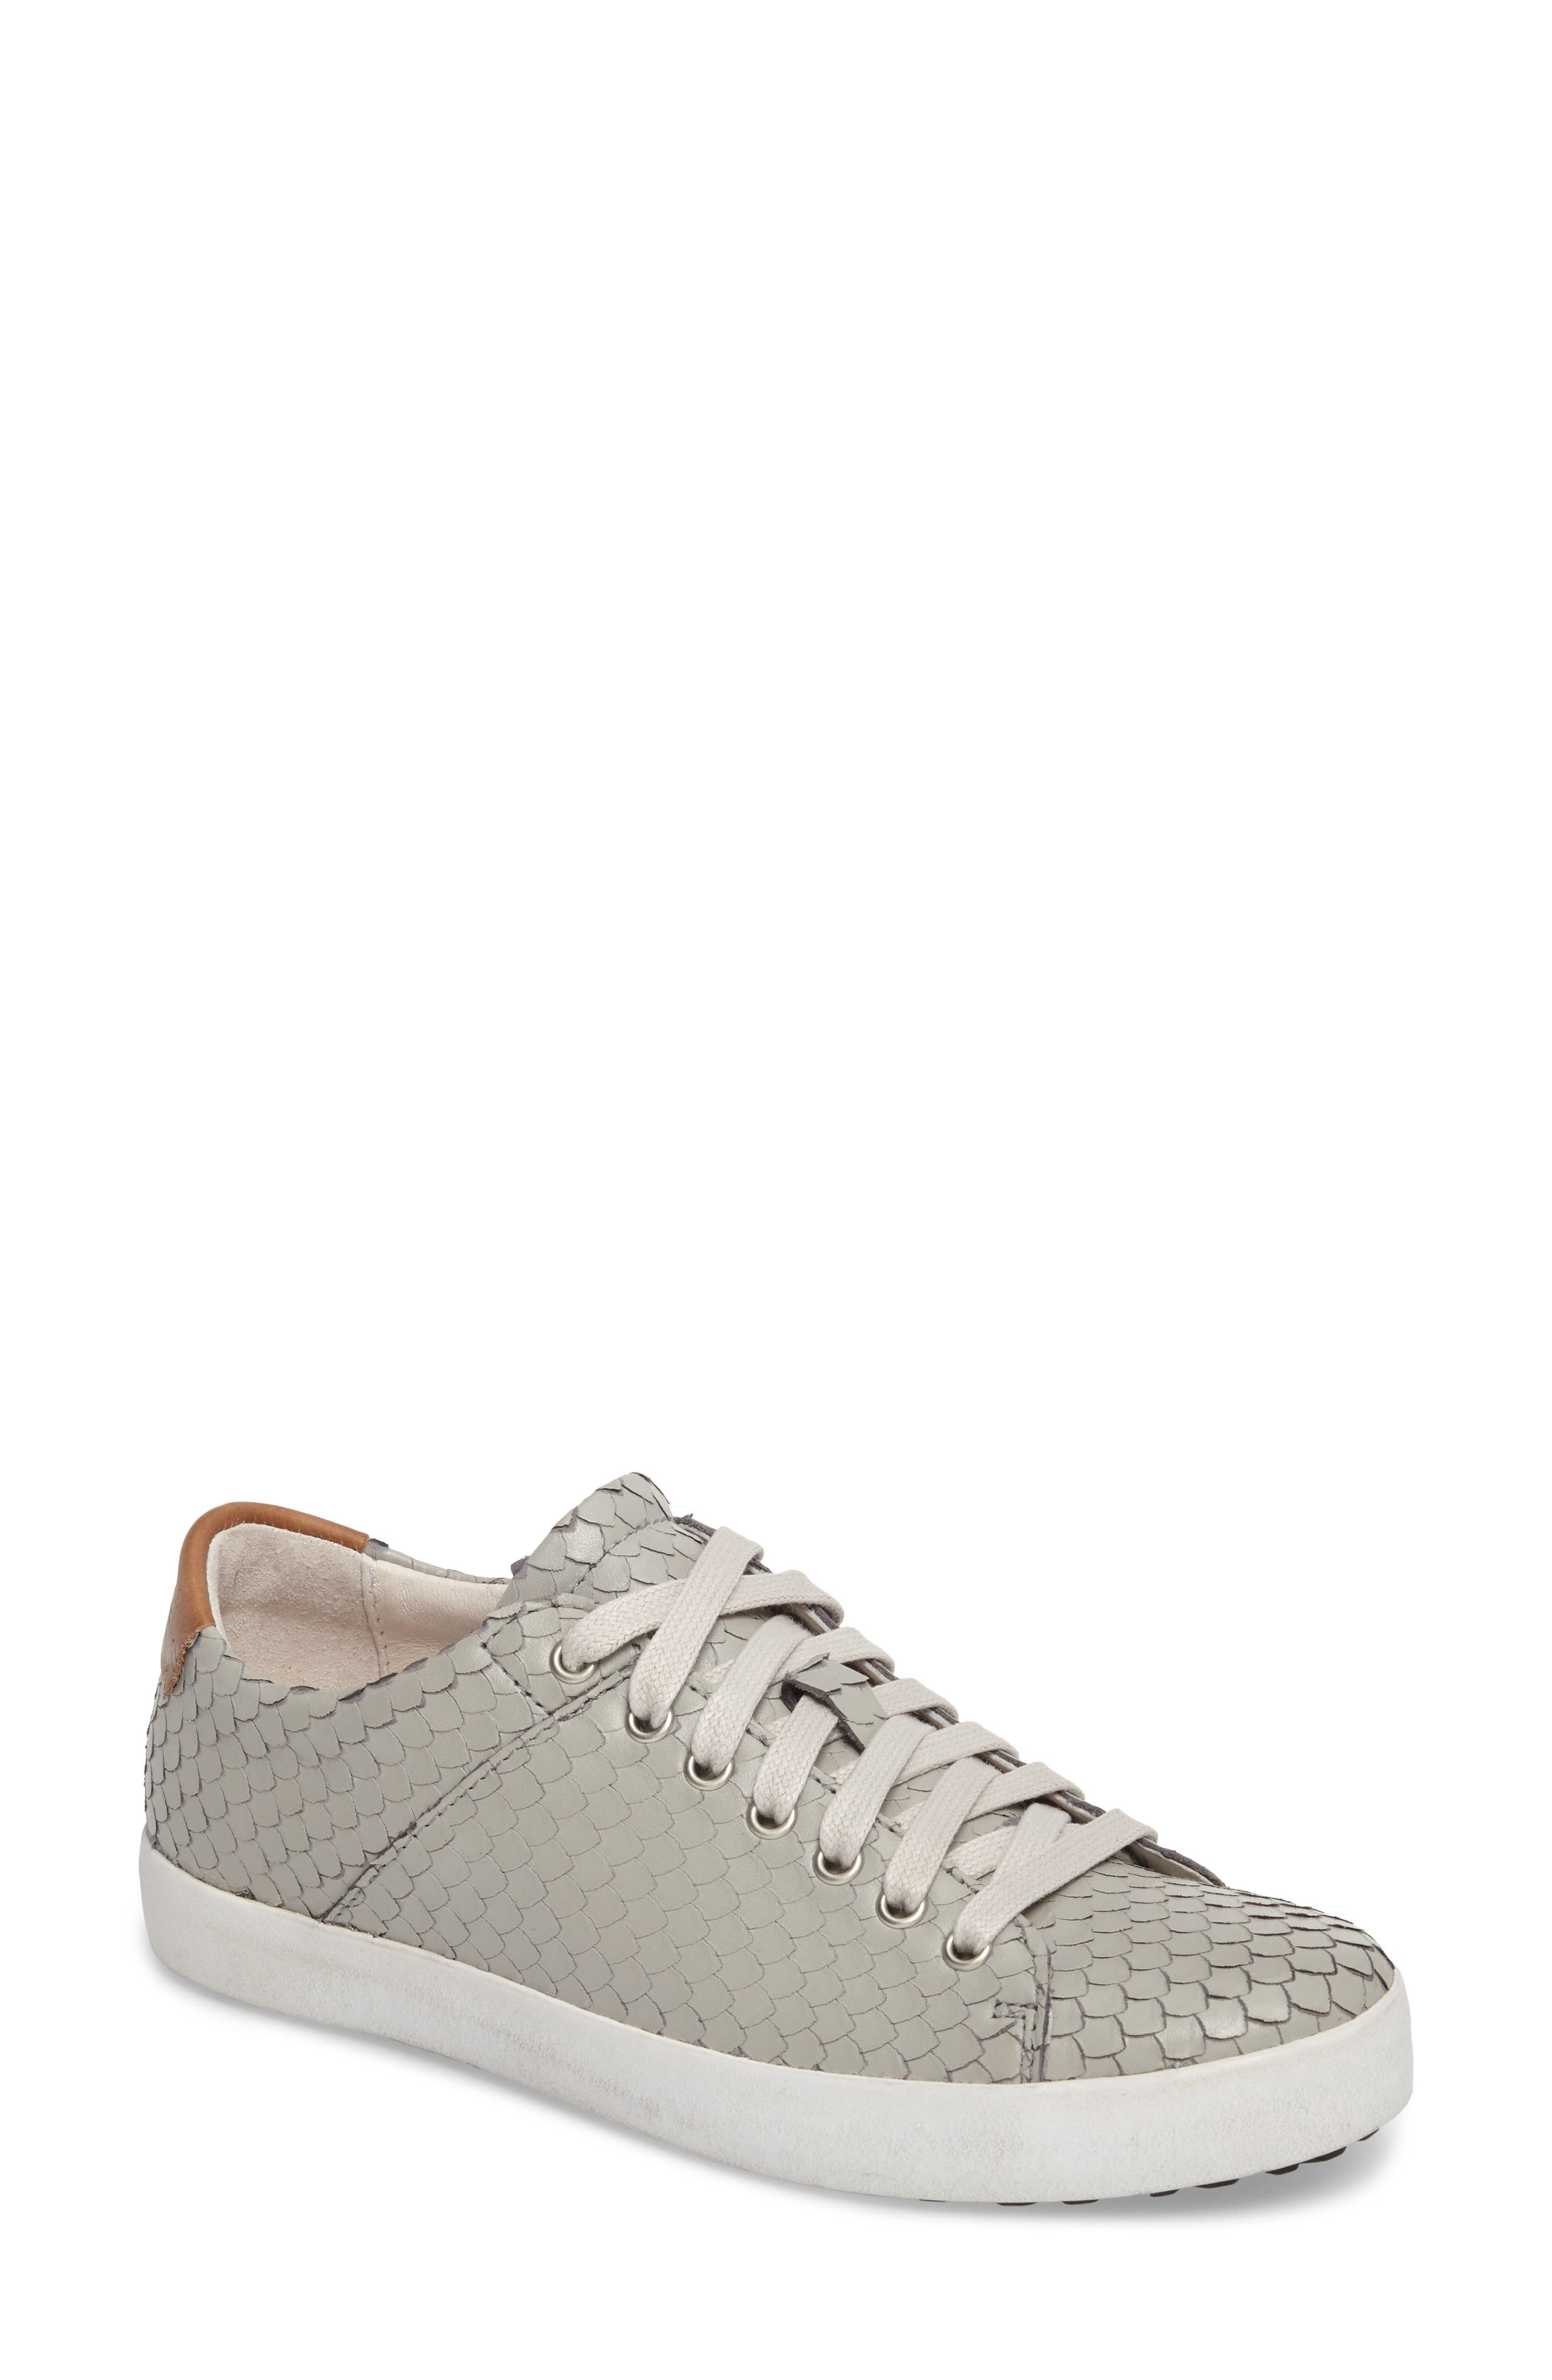 OL25 Sneaker,                         Main,                         color, Grey Leather